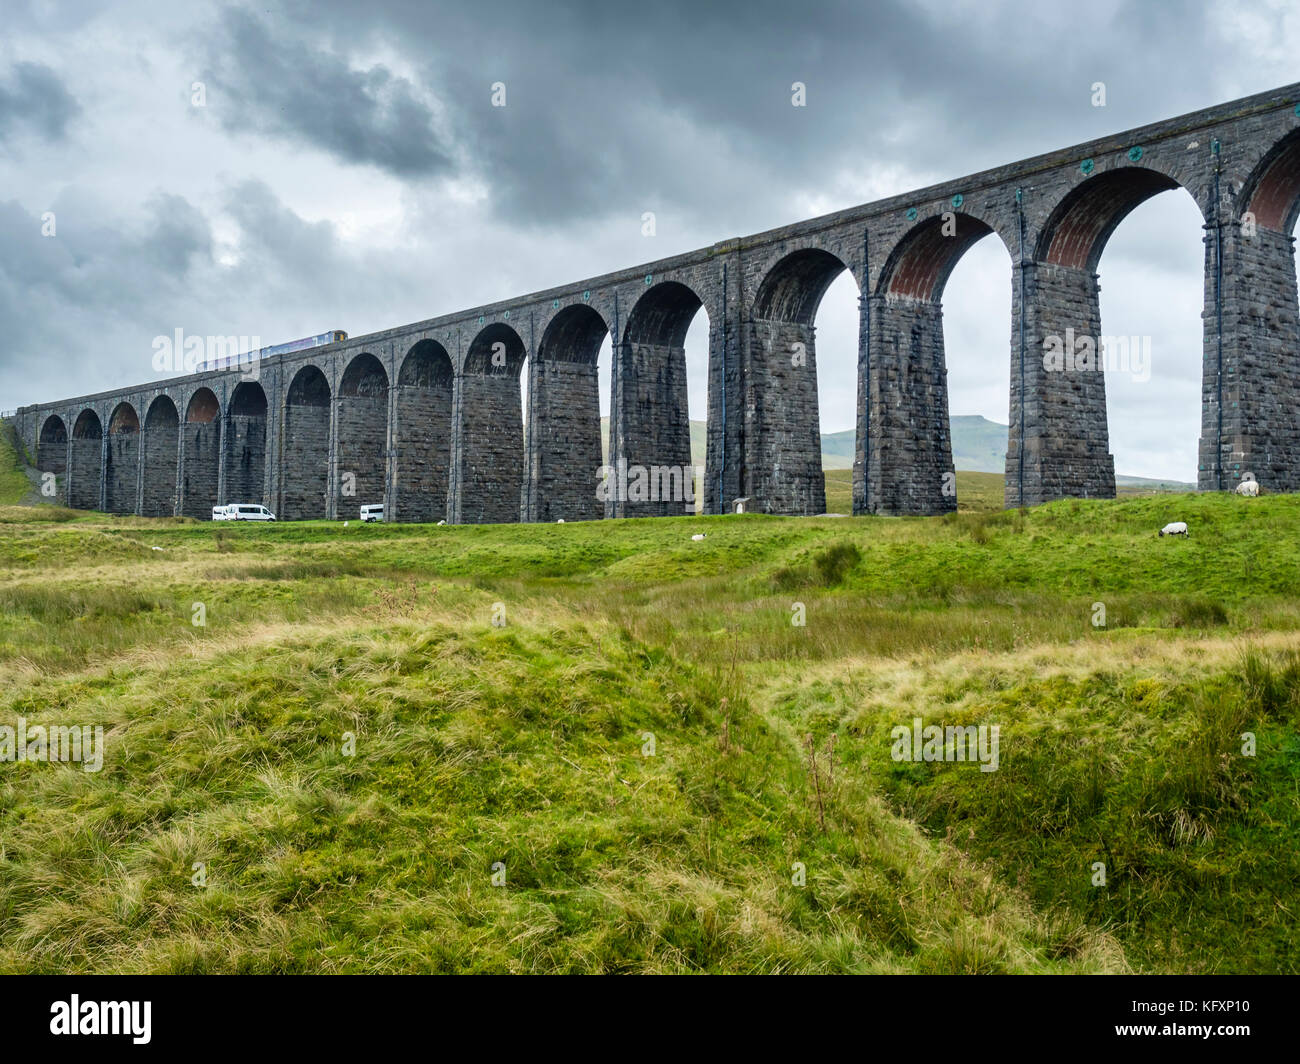 Railway Viaduct Ribblehead, Destrict Yorkshire Dales, England, Great Britain - Stock Image